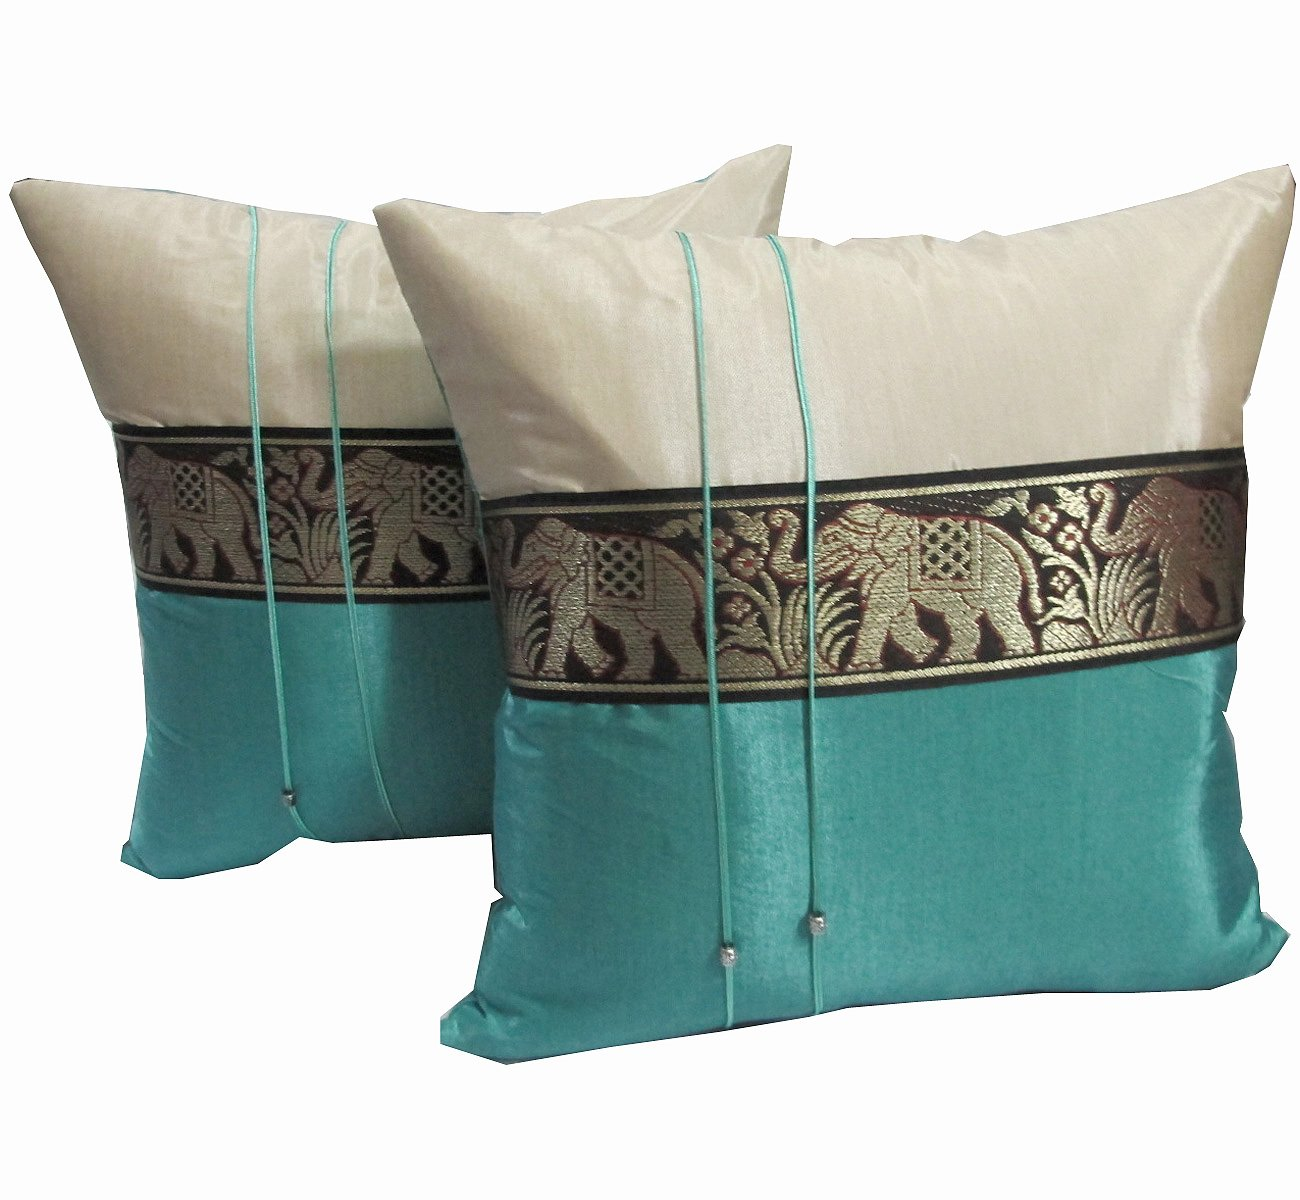 ''HelloThailand'' (DOUBLE CREAM AND TURQUOISE) 2 BEAUTIFUL & COOL BIG ELEPHANTS THROW CUSHION COVER/PILLOW CASE HANDMADE BY THAI SILK FOR DECORATIVE SOFA, CAR AND LIVING ROOM SIZE 16 X 16 INCHES